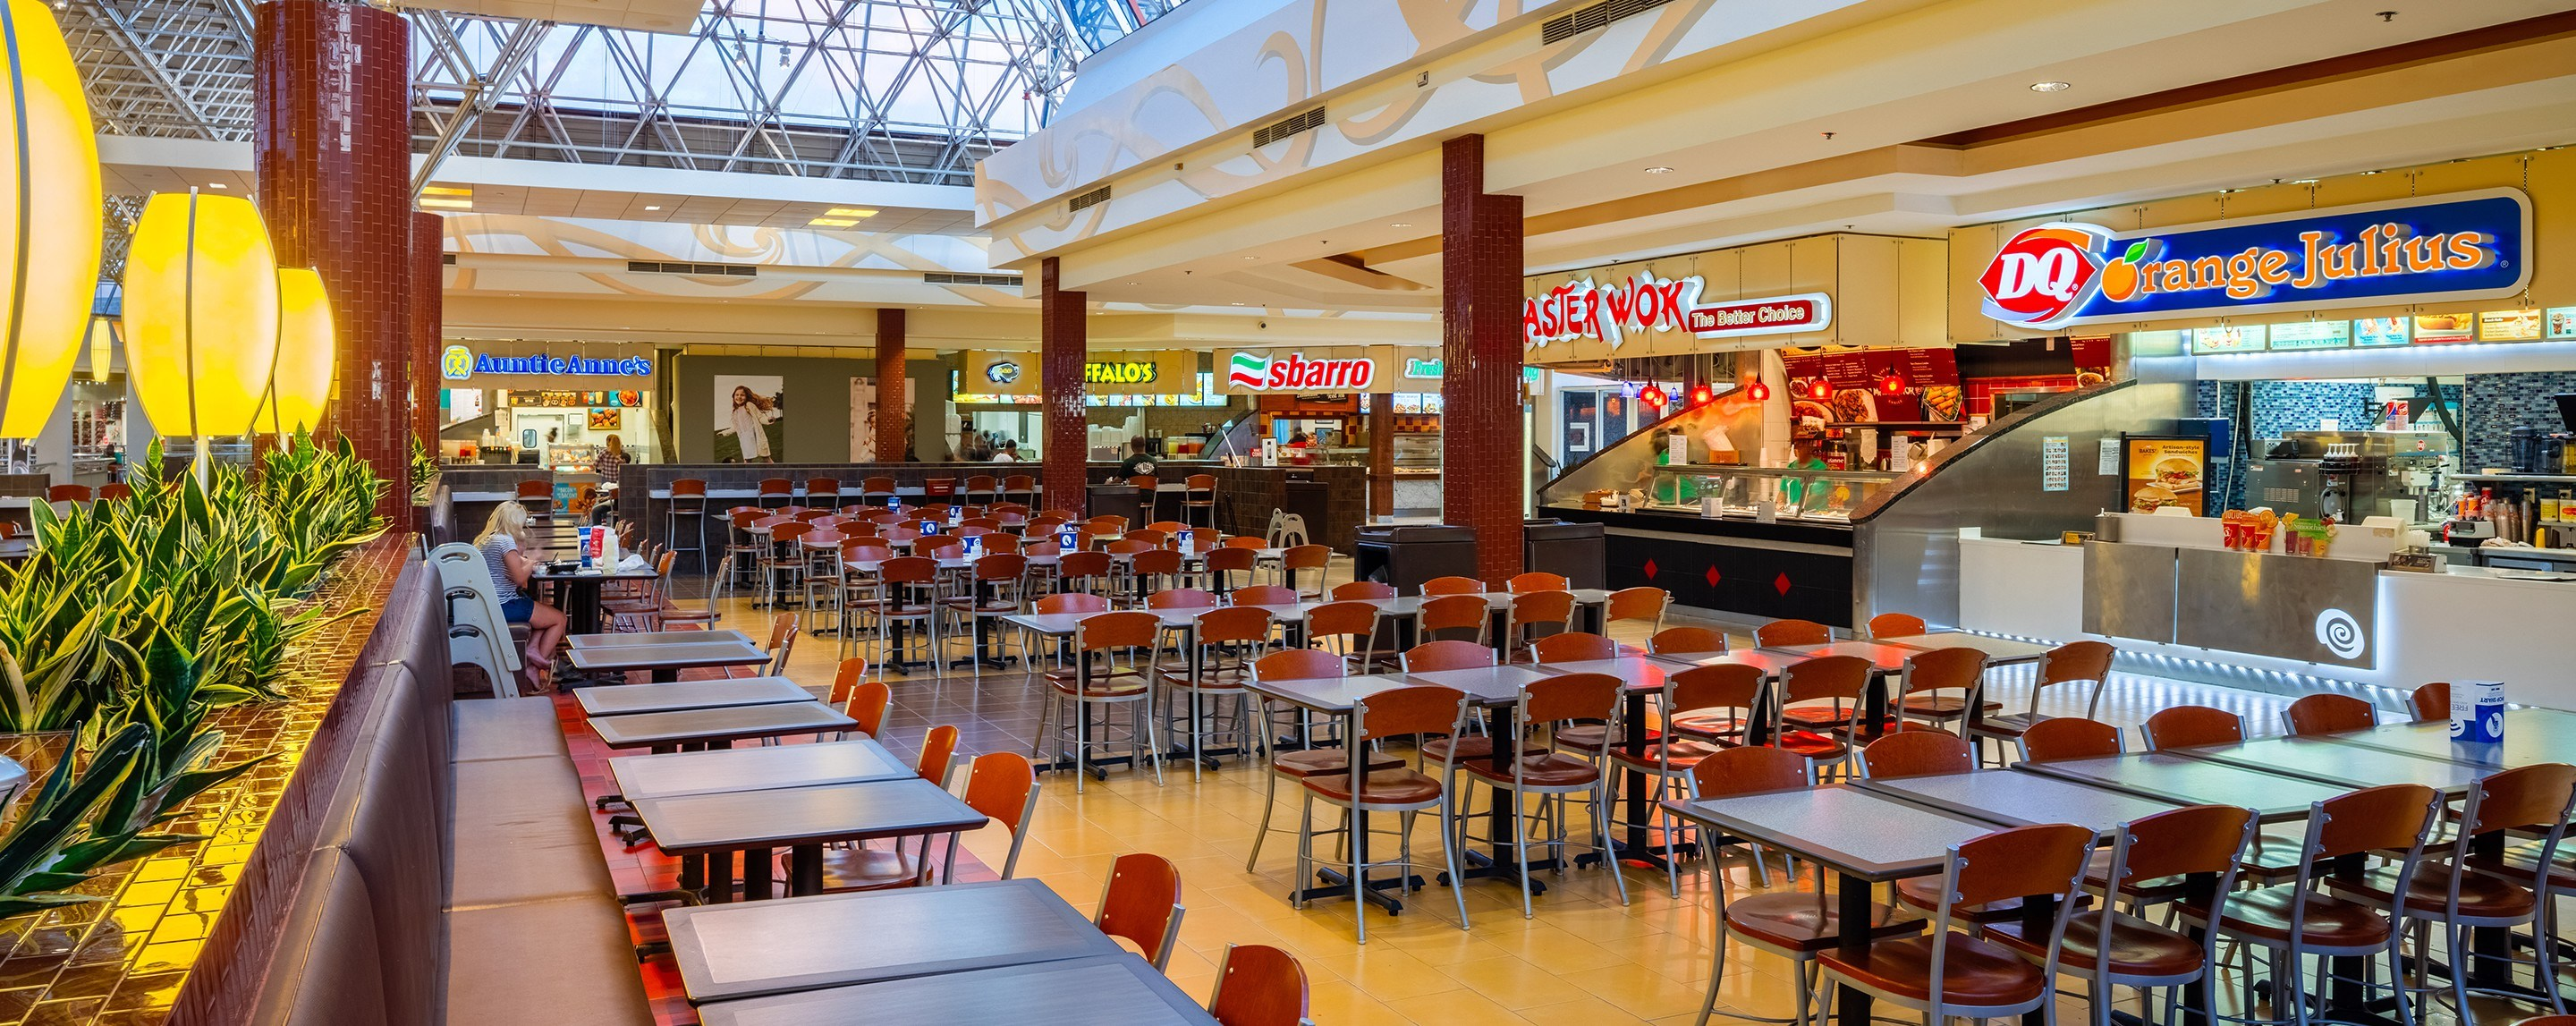 Empty tables and chairs in a food court featuring Sbarro. There are skylights and planters behind the booths.